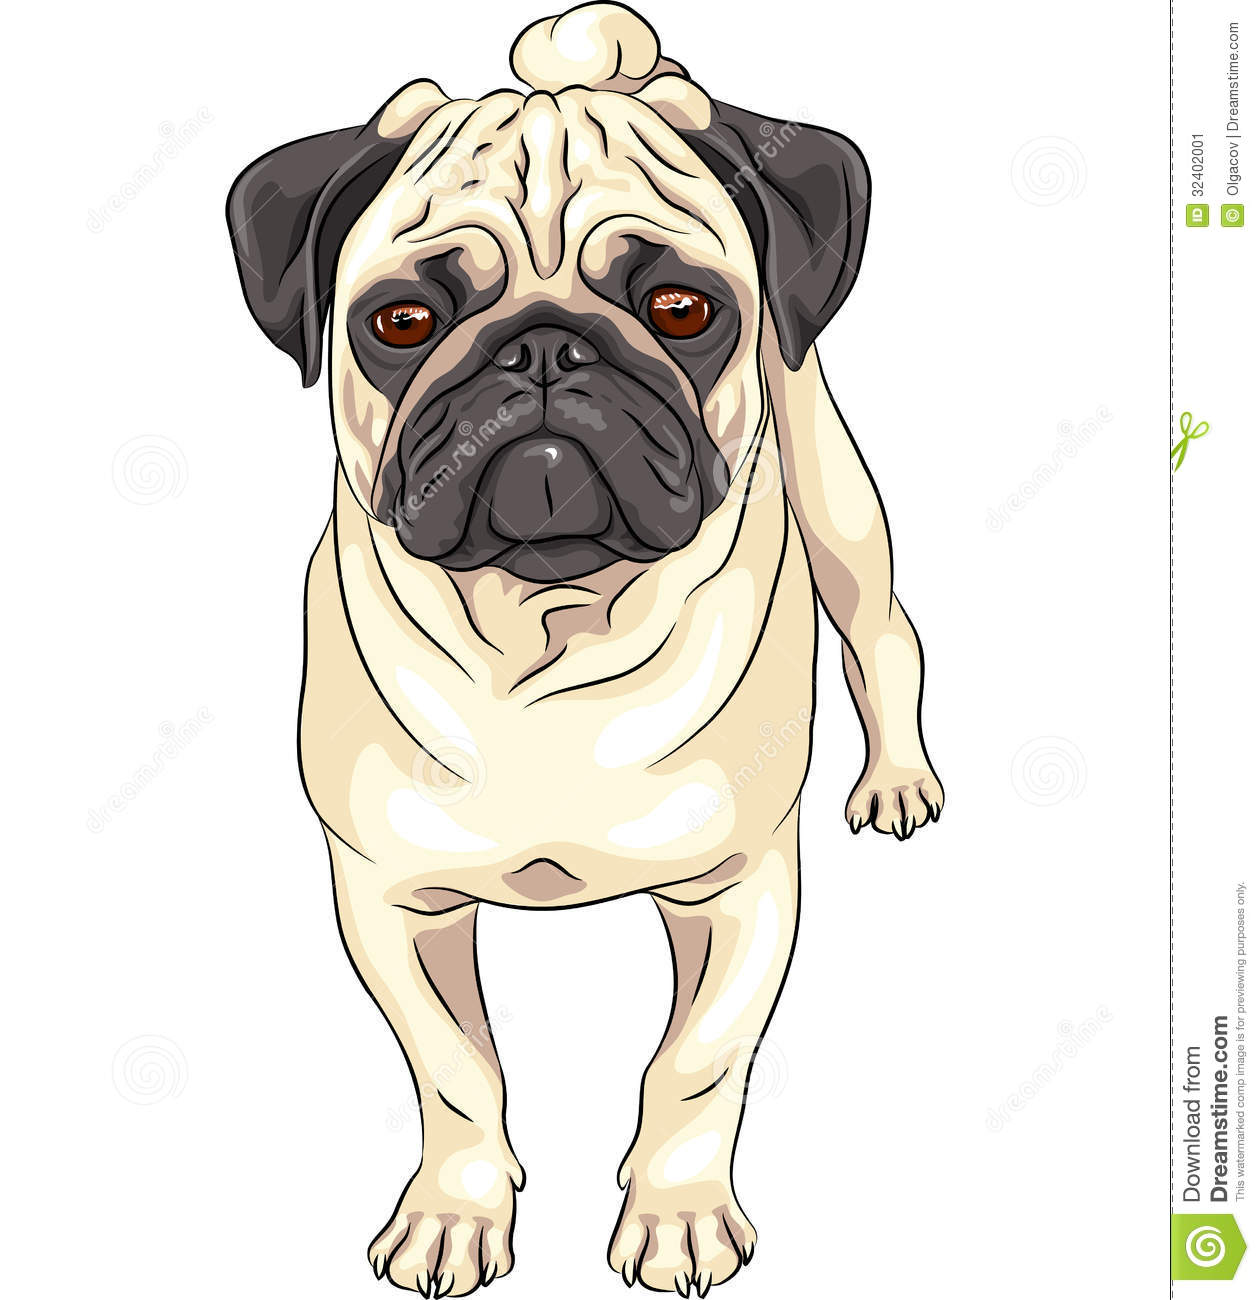 Vector Sketch Cute Dog Pug Breed Stock Image   Image  32402001